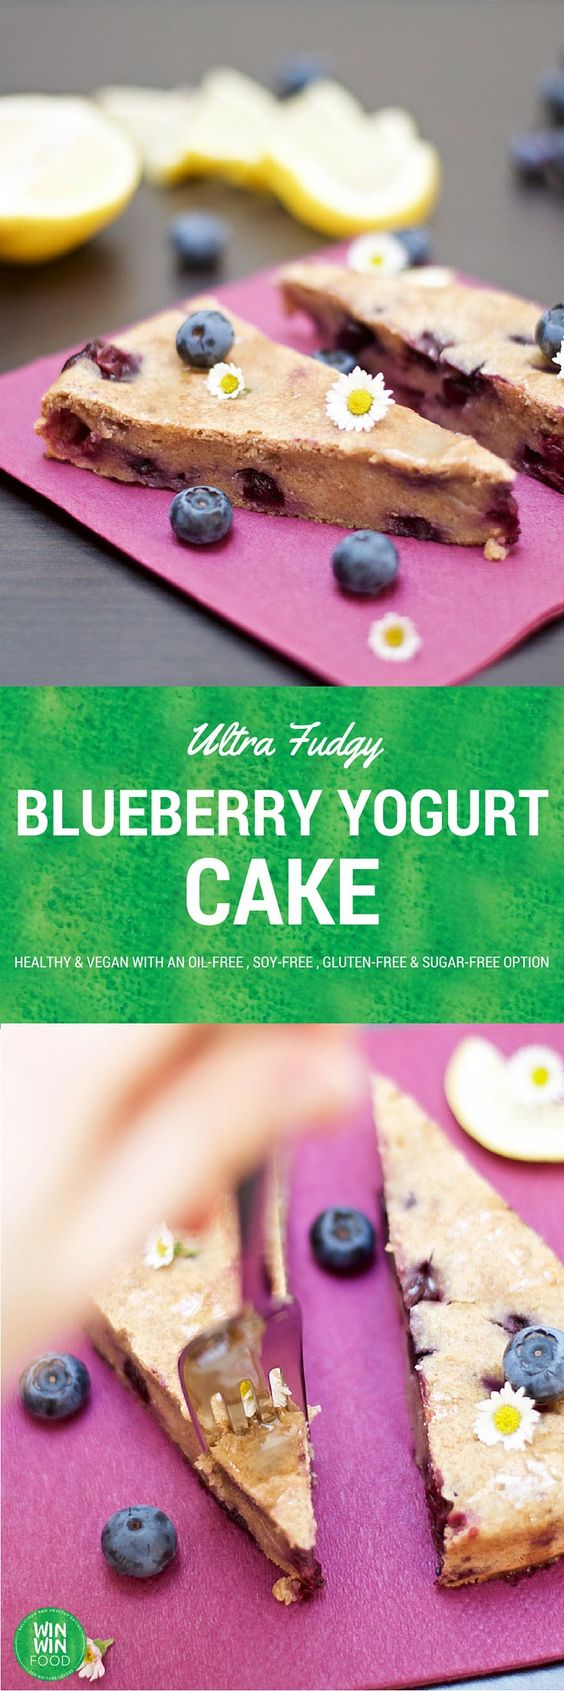 Blueberry Yogurt Cake | WIN-WINFOOD.com #healthy #vegan treat that has only 100 calories per slice and can be #glutenfree #oilfree and…